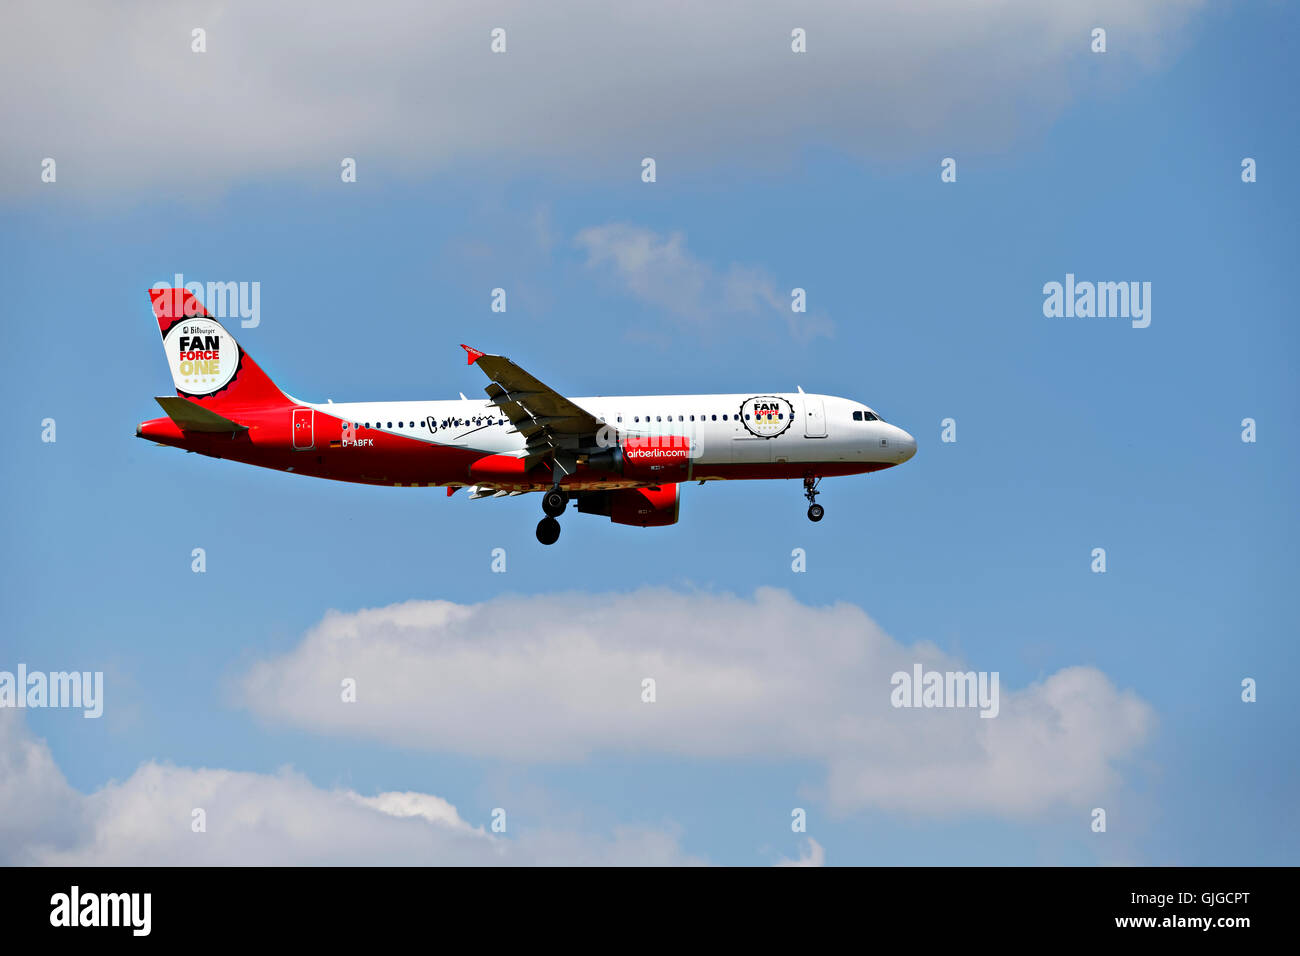 Air Berlin Airbus A320-214 approach to landing at Franz Josef Strauss Airport, Munich, Upper Bavaria, Germany, Europe. - Stock Image